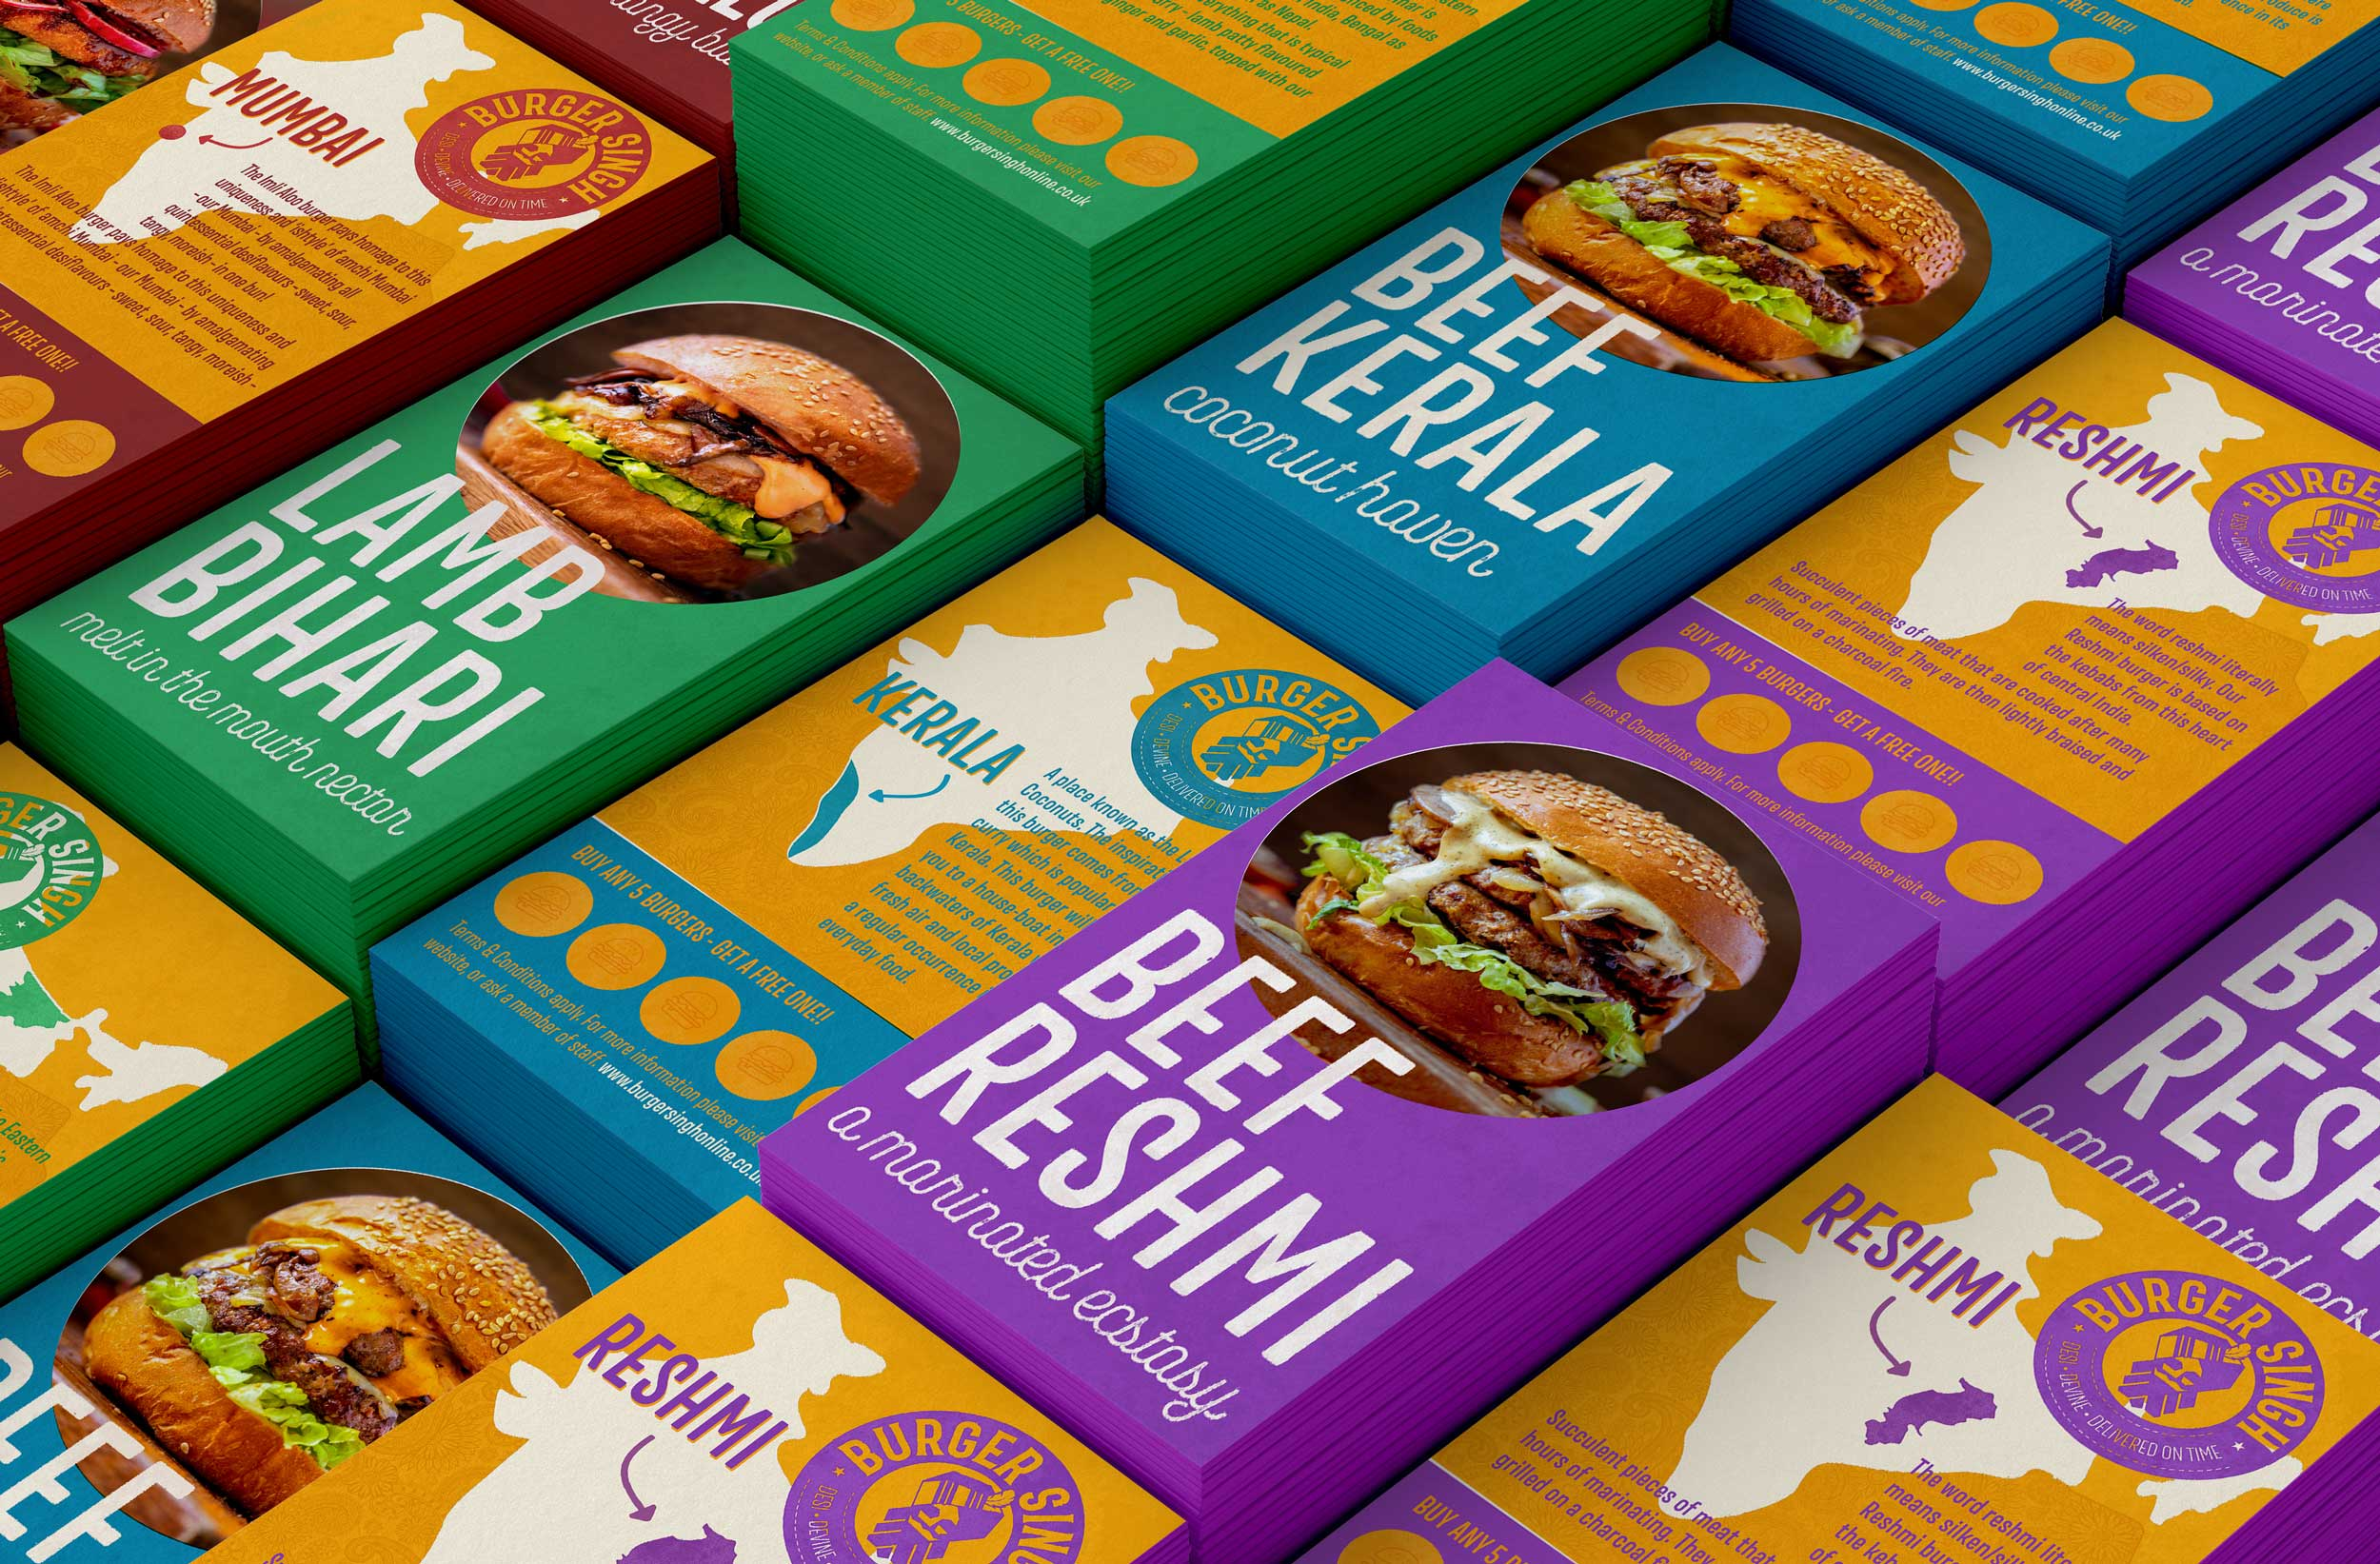 Each burger has it's own business card with loyalty scheme integrated.